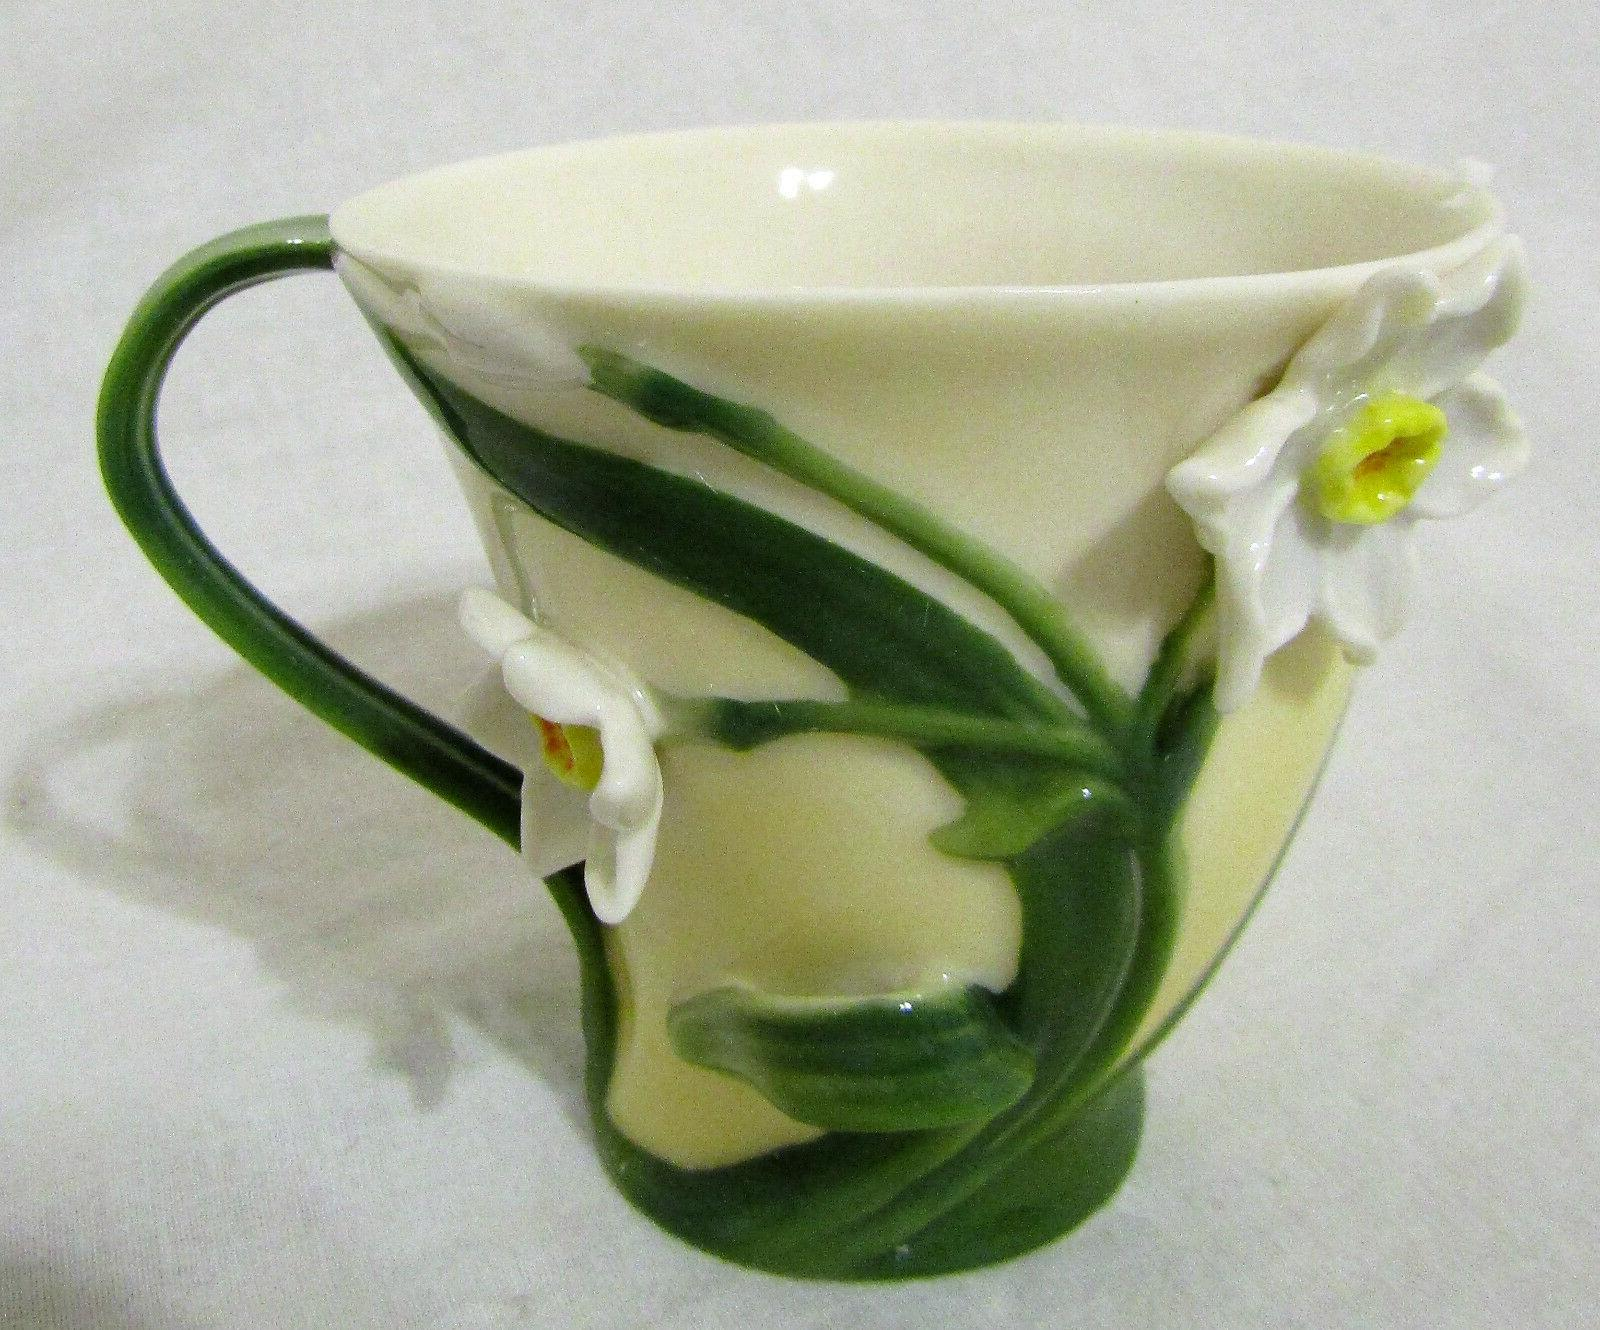 Two's Company - Garden Party Set Hand - Narcissus -